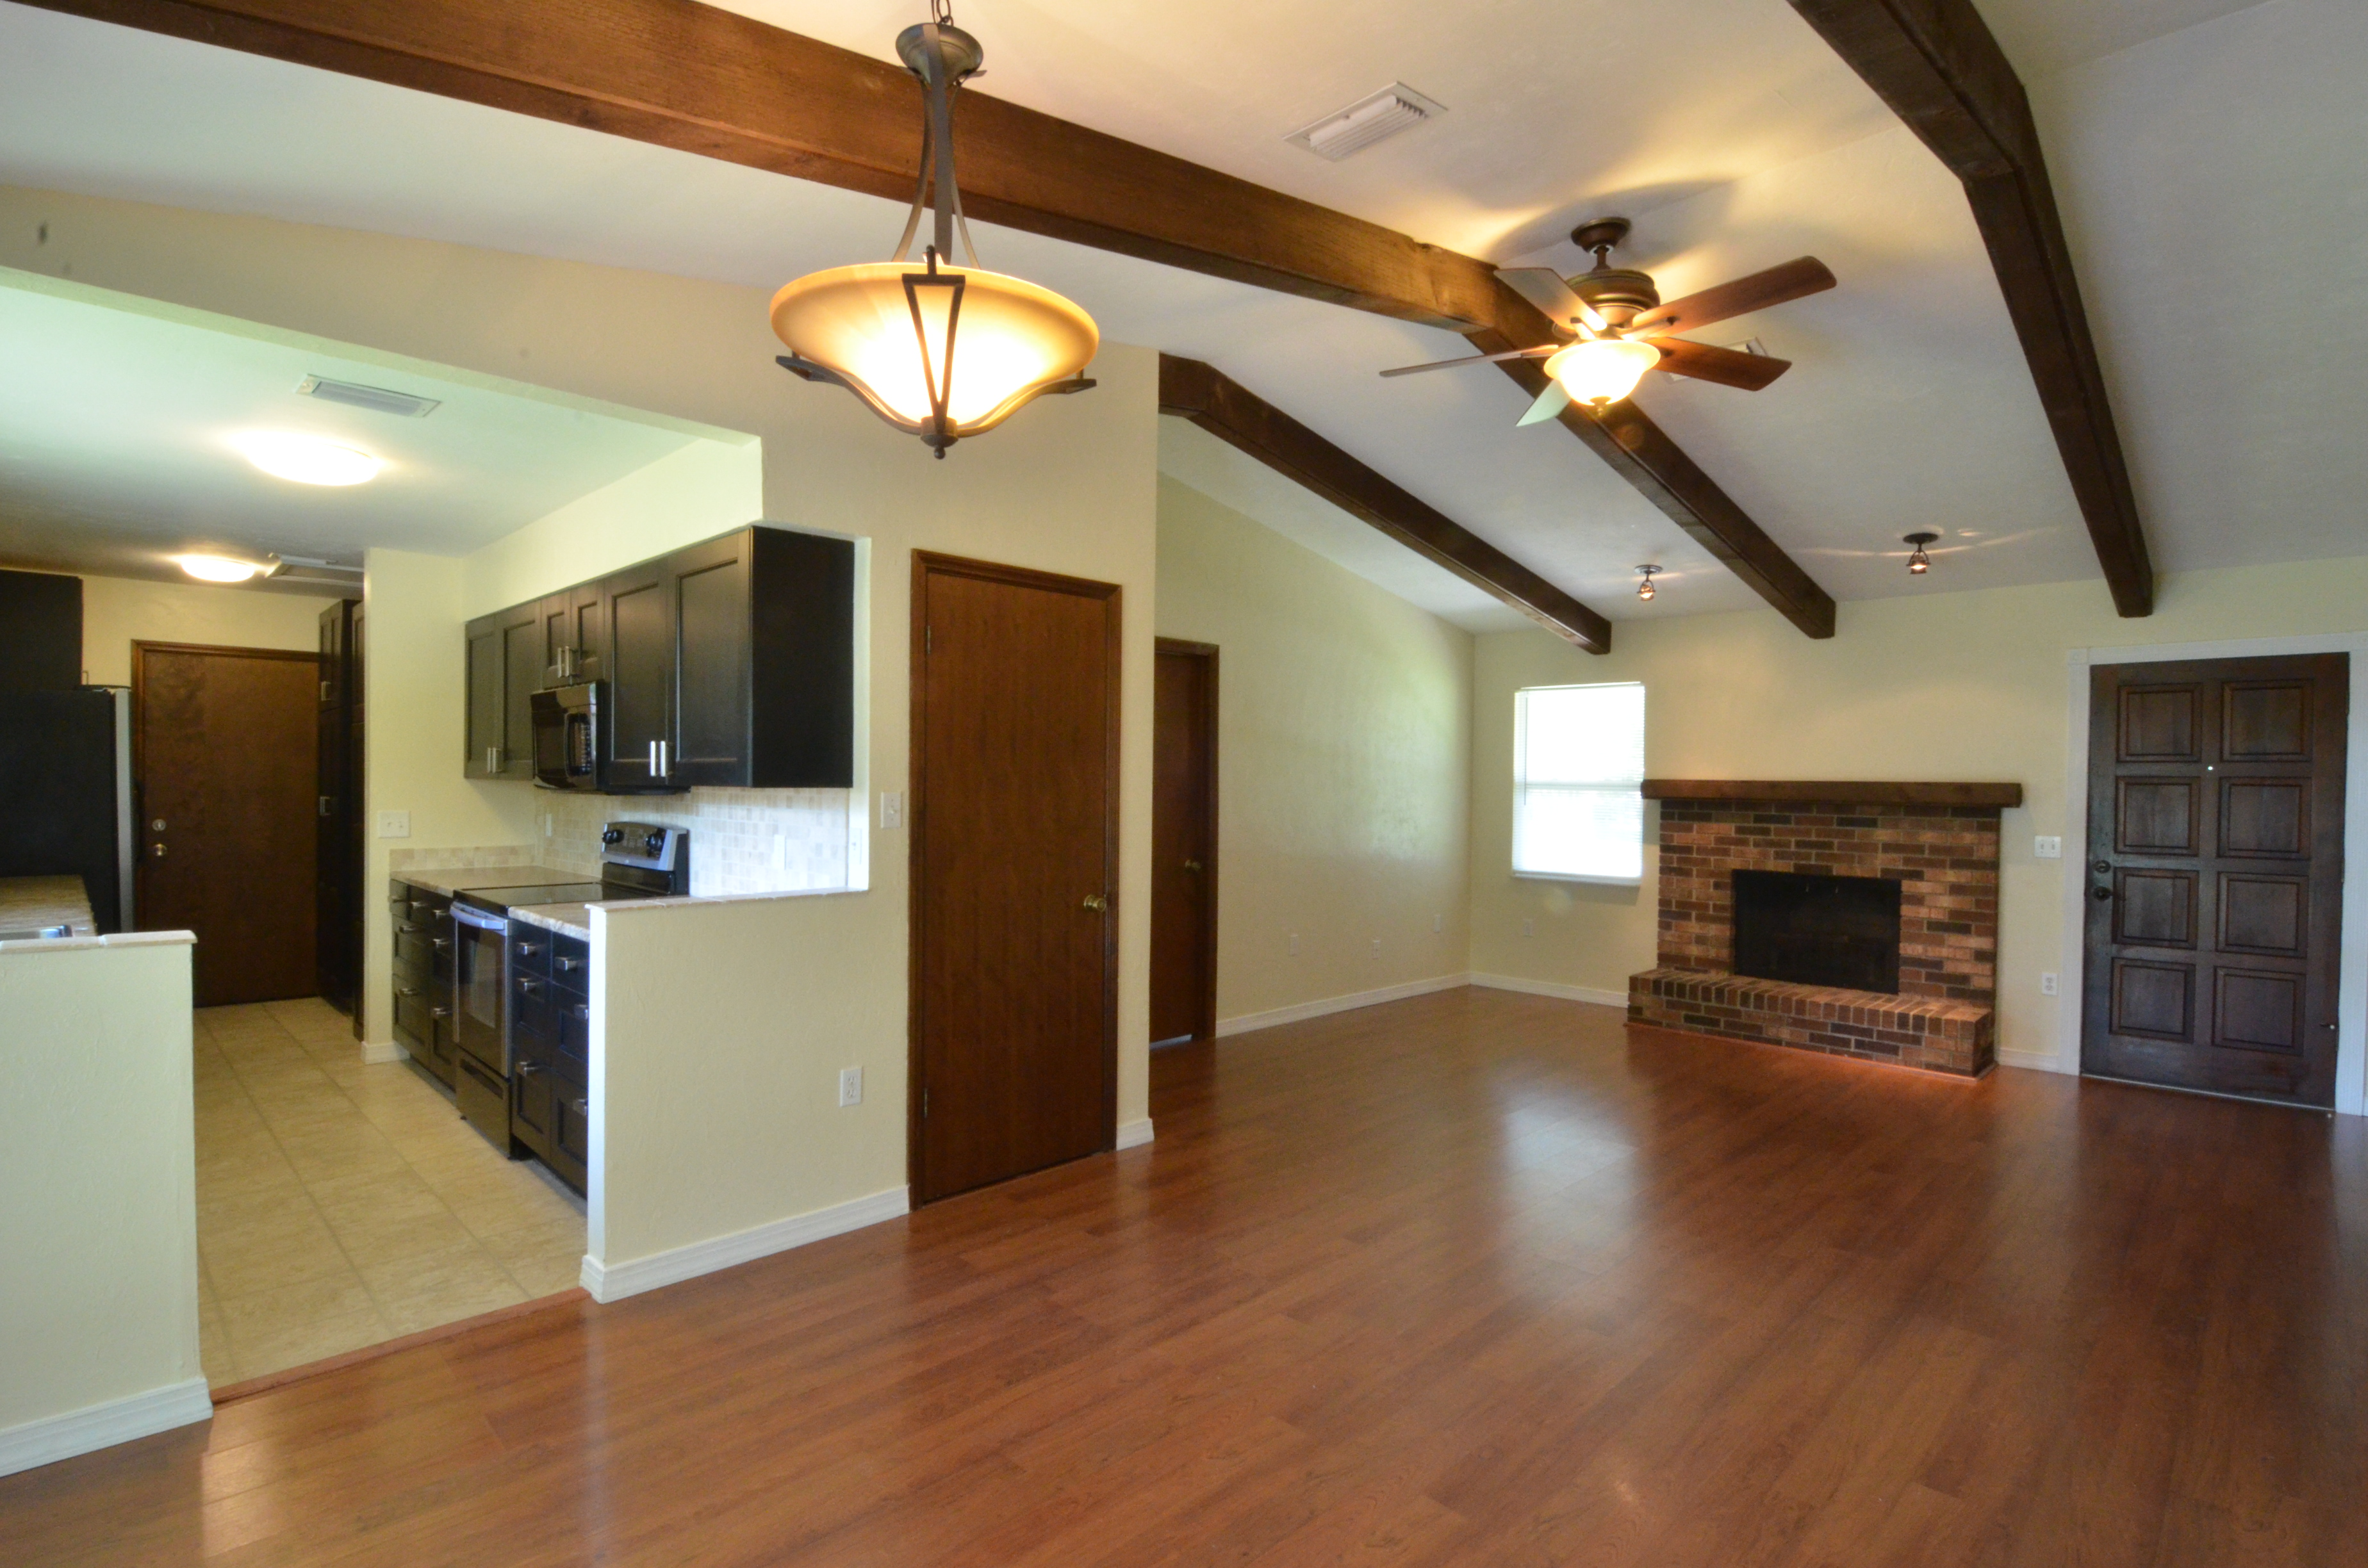 Sold: Benwood Home for Sale in NW Gainesville